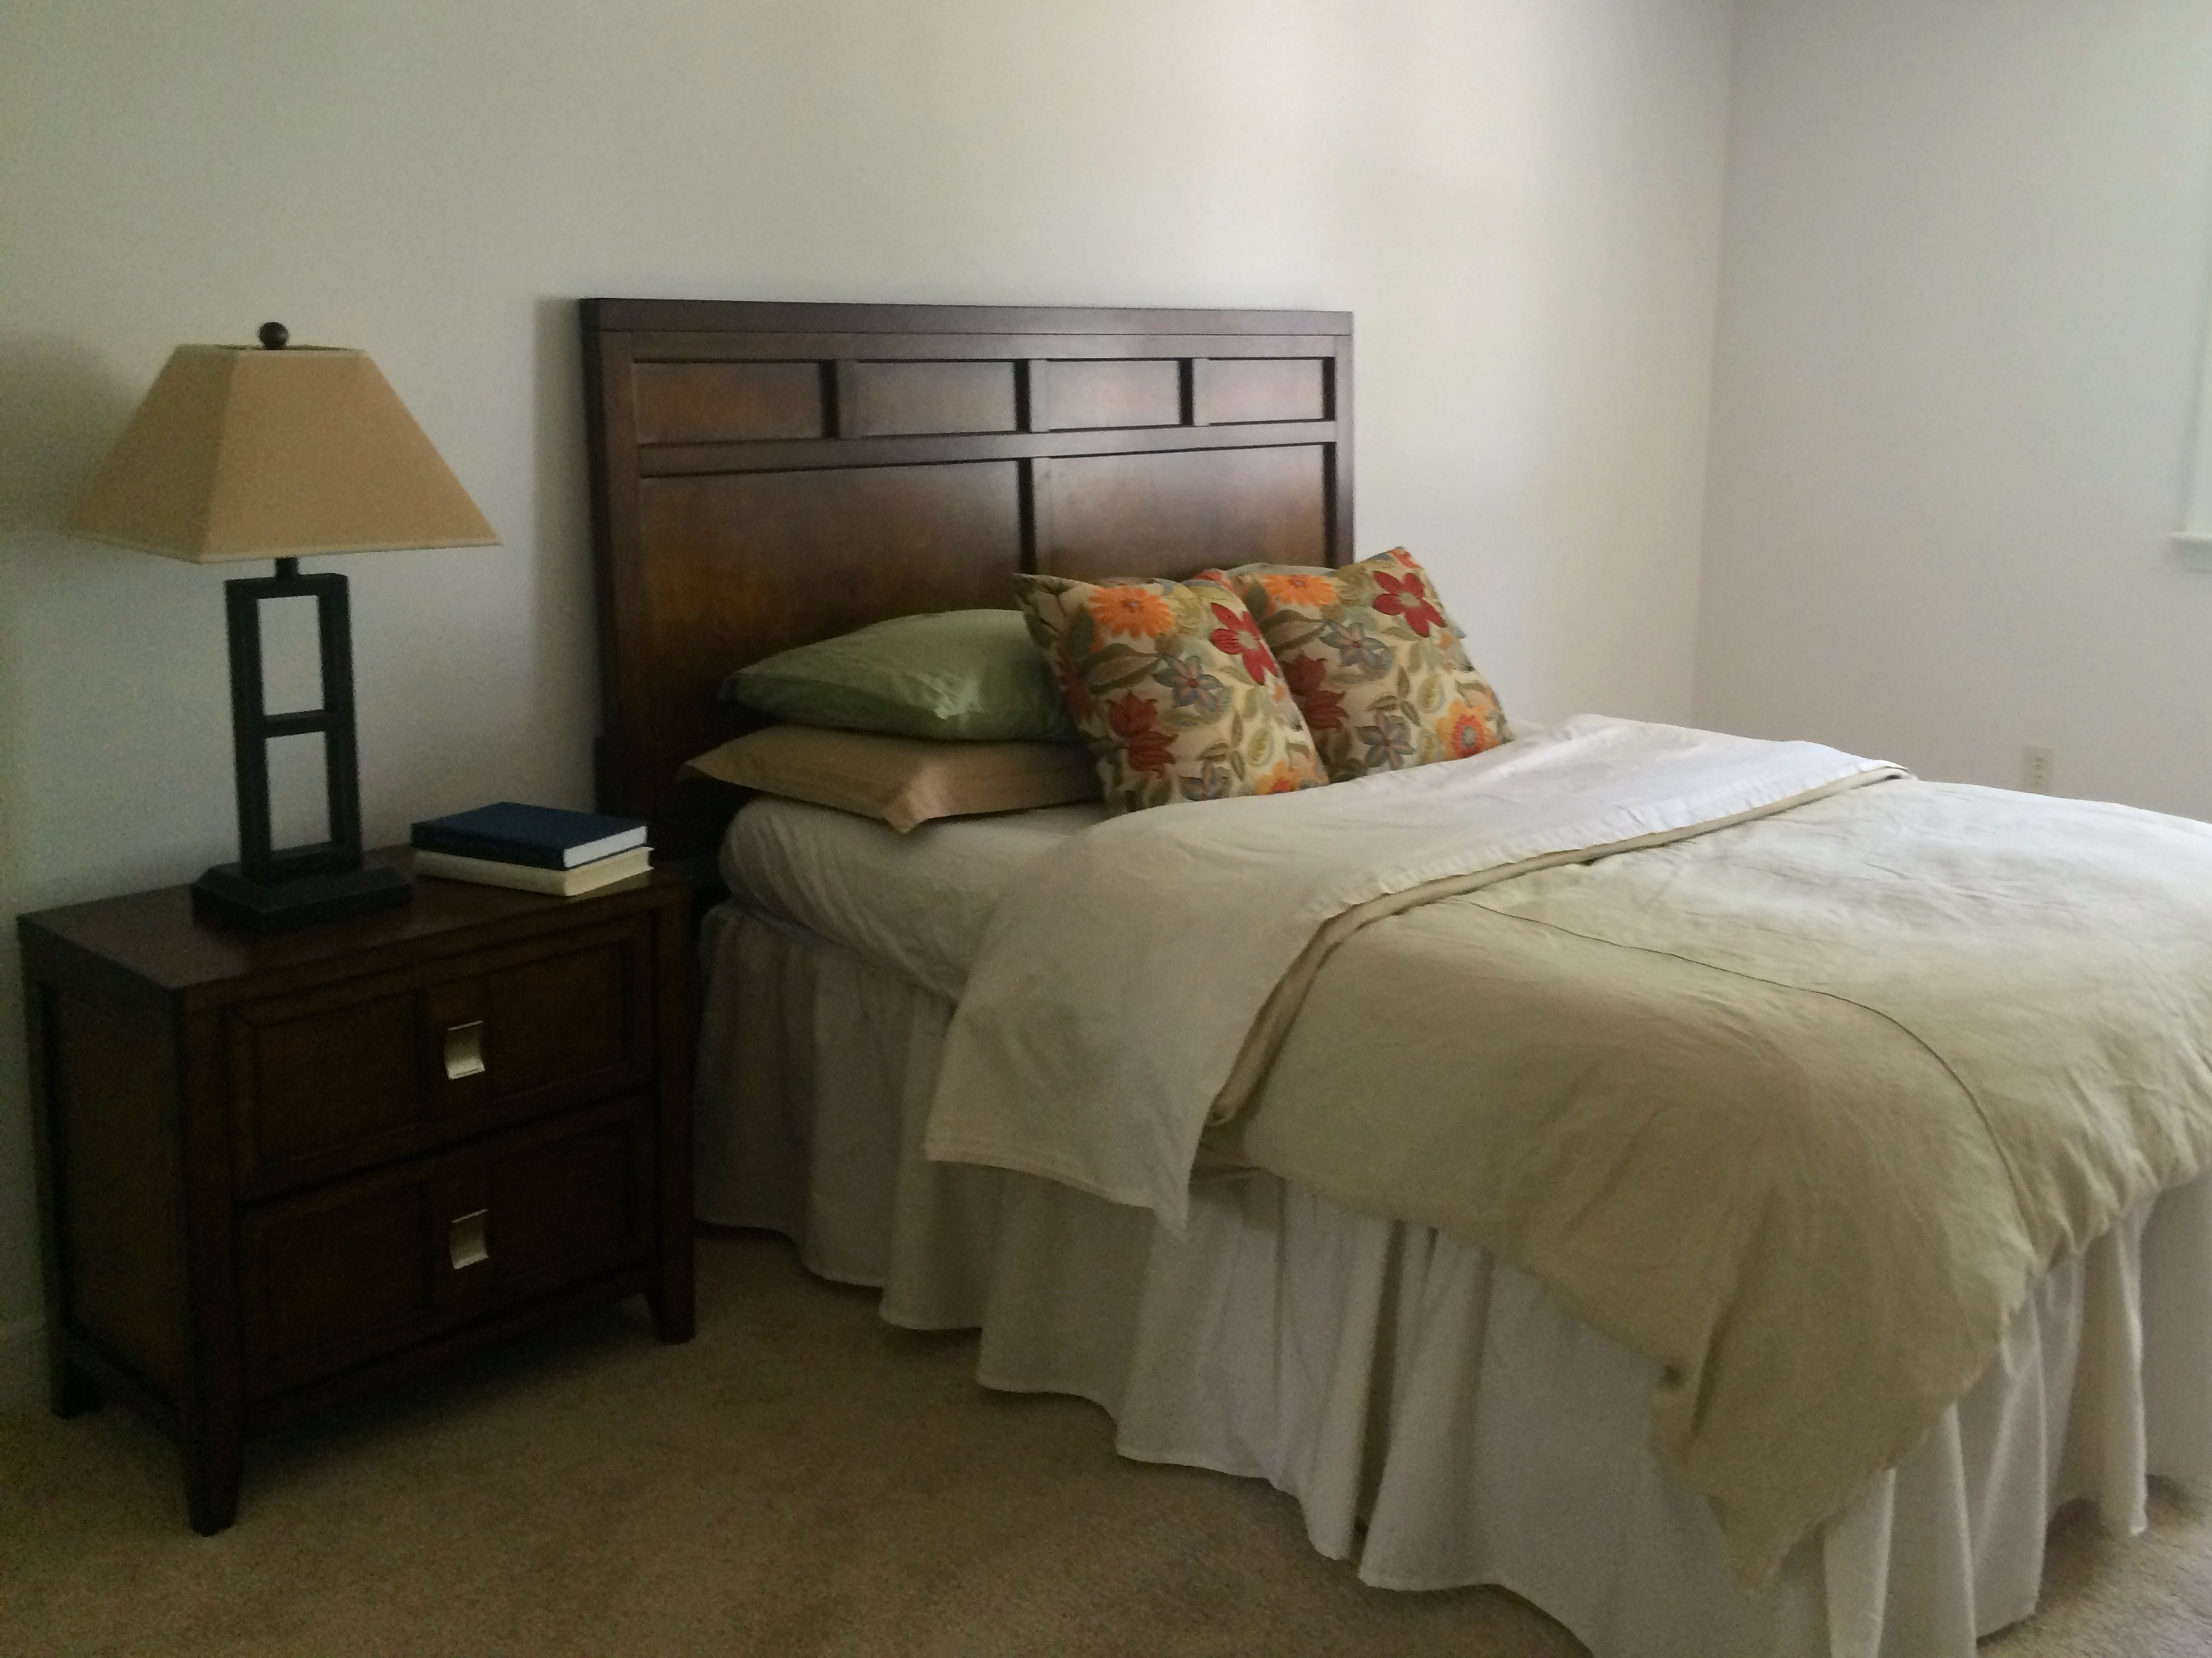 Bedroom with rental furniture